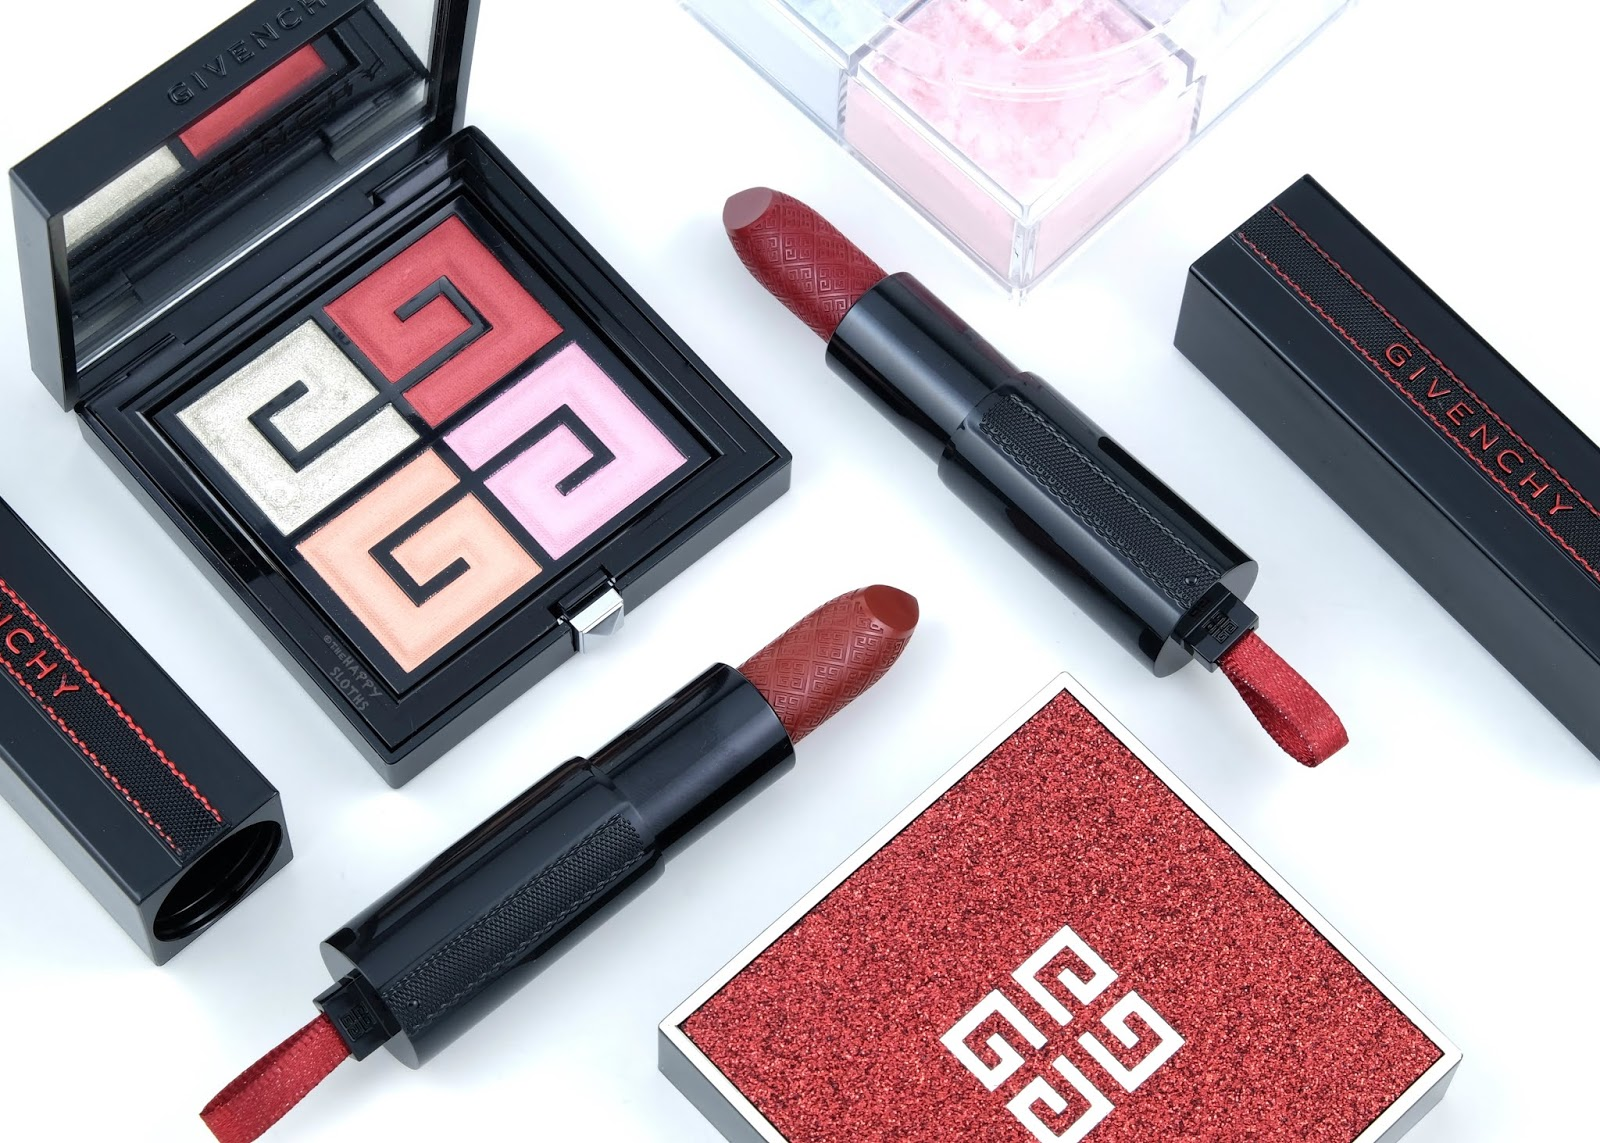 Givenchy | Holiday 2019 Red Line Collection: Review and Swatches